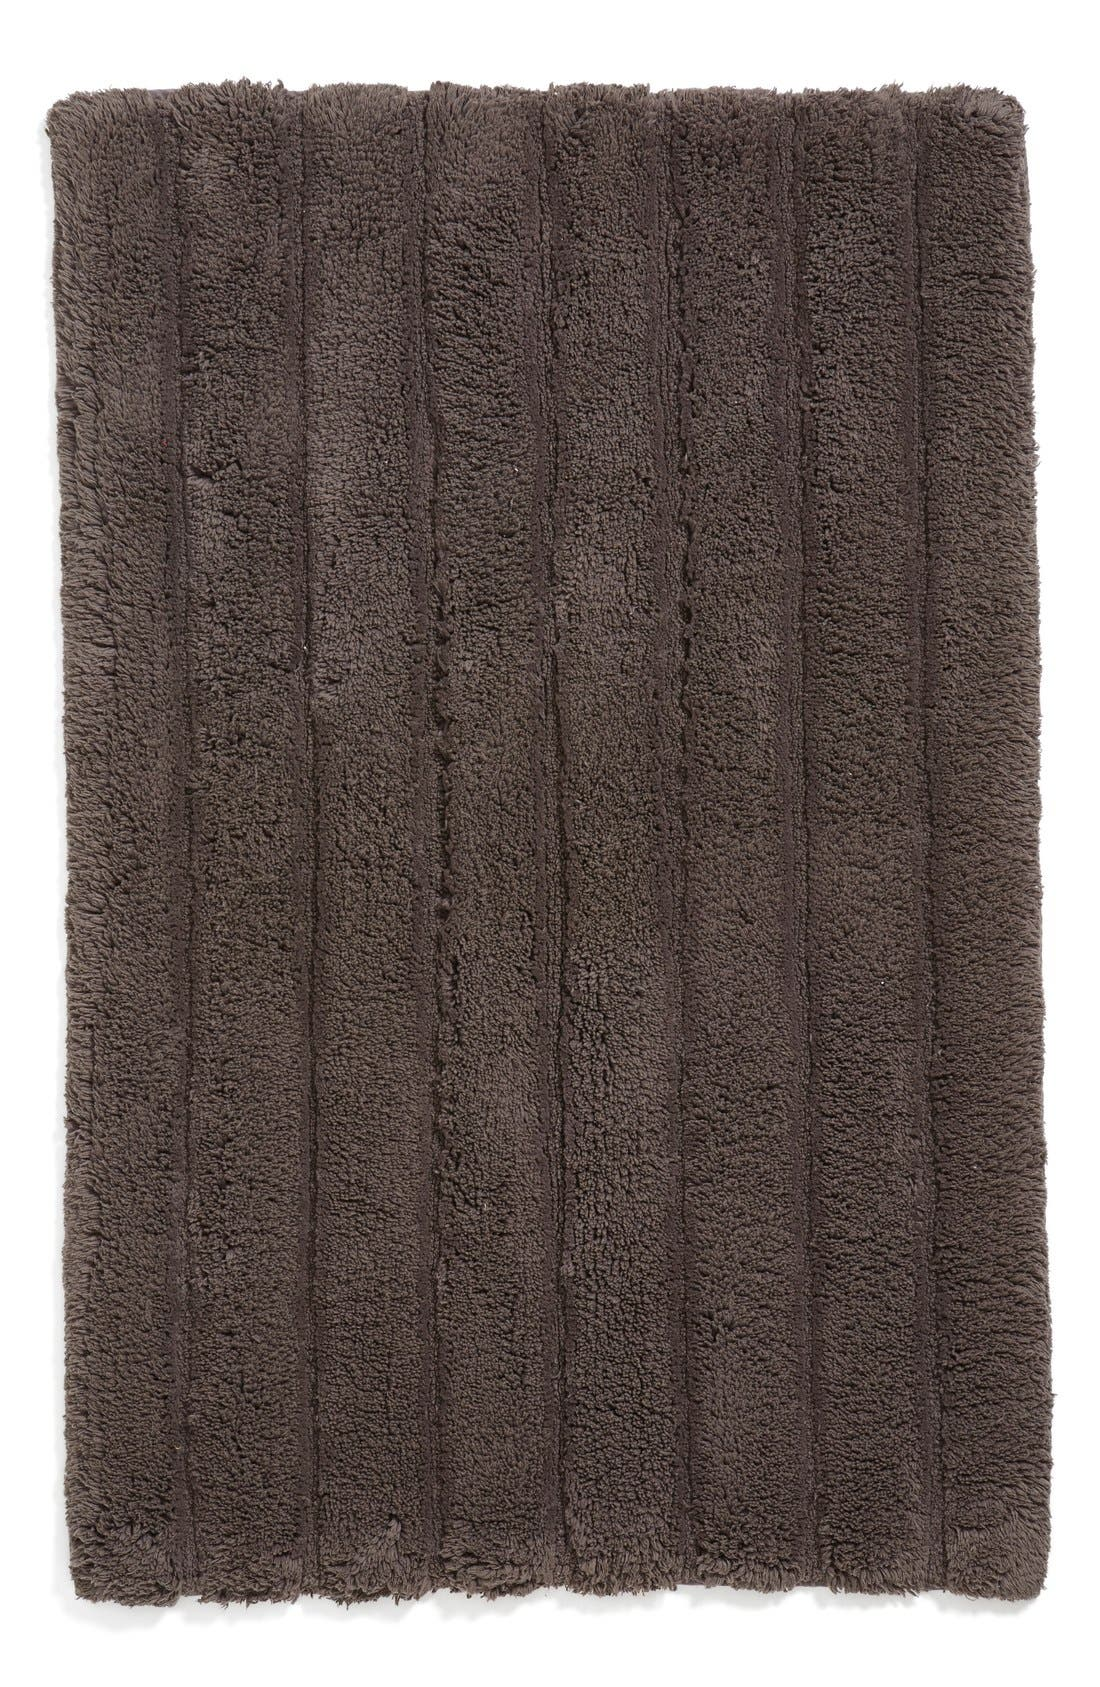 Ribbed Velour Bath Rug,                             Main thumbnail 4, color,